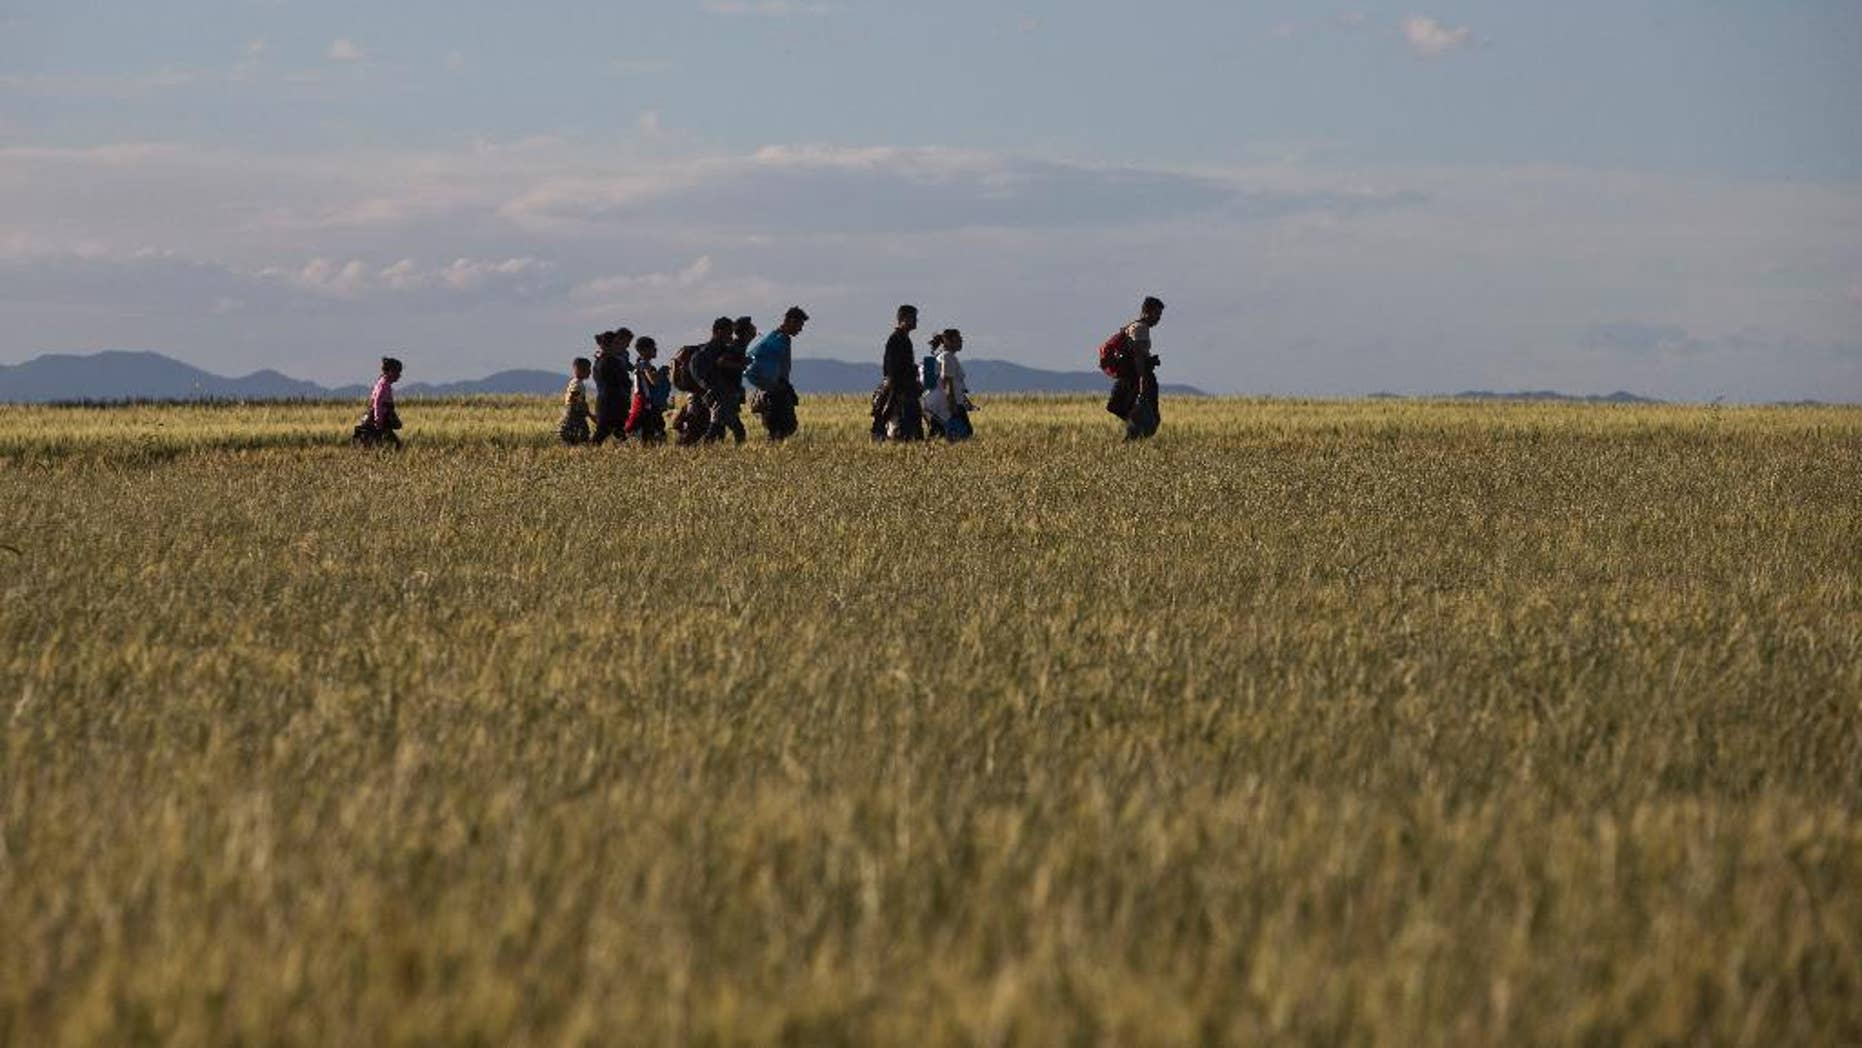 Migrants and refugees walk among fields on their way to Idomeni camp, after trying to cross the Greek-Macedonian border, Saturday, May 14, 2016. Thousands of stranded refugees and migrants are camped at the makeshift refugee camp of the northern Greek border point of Idomeni. (AP Photo/Petros Giannakouris)